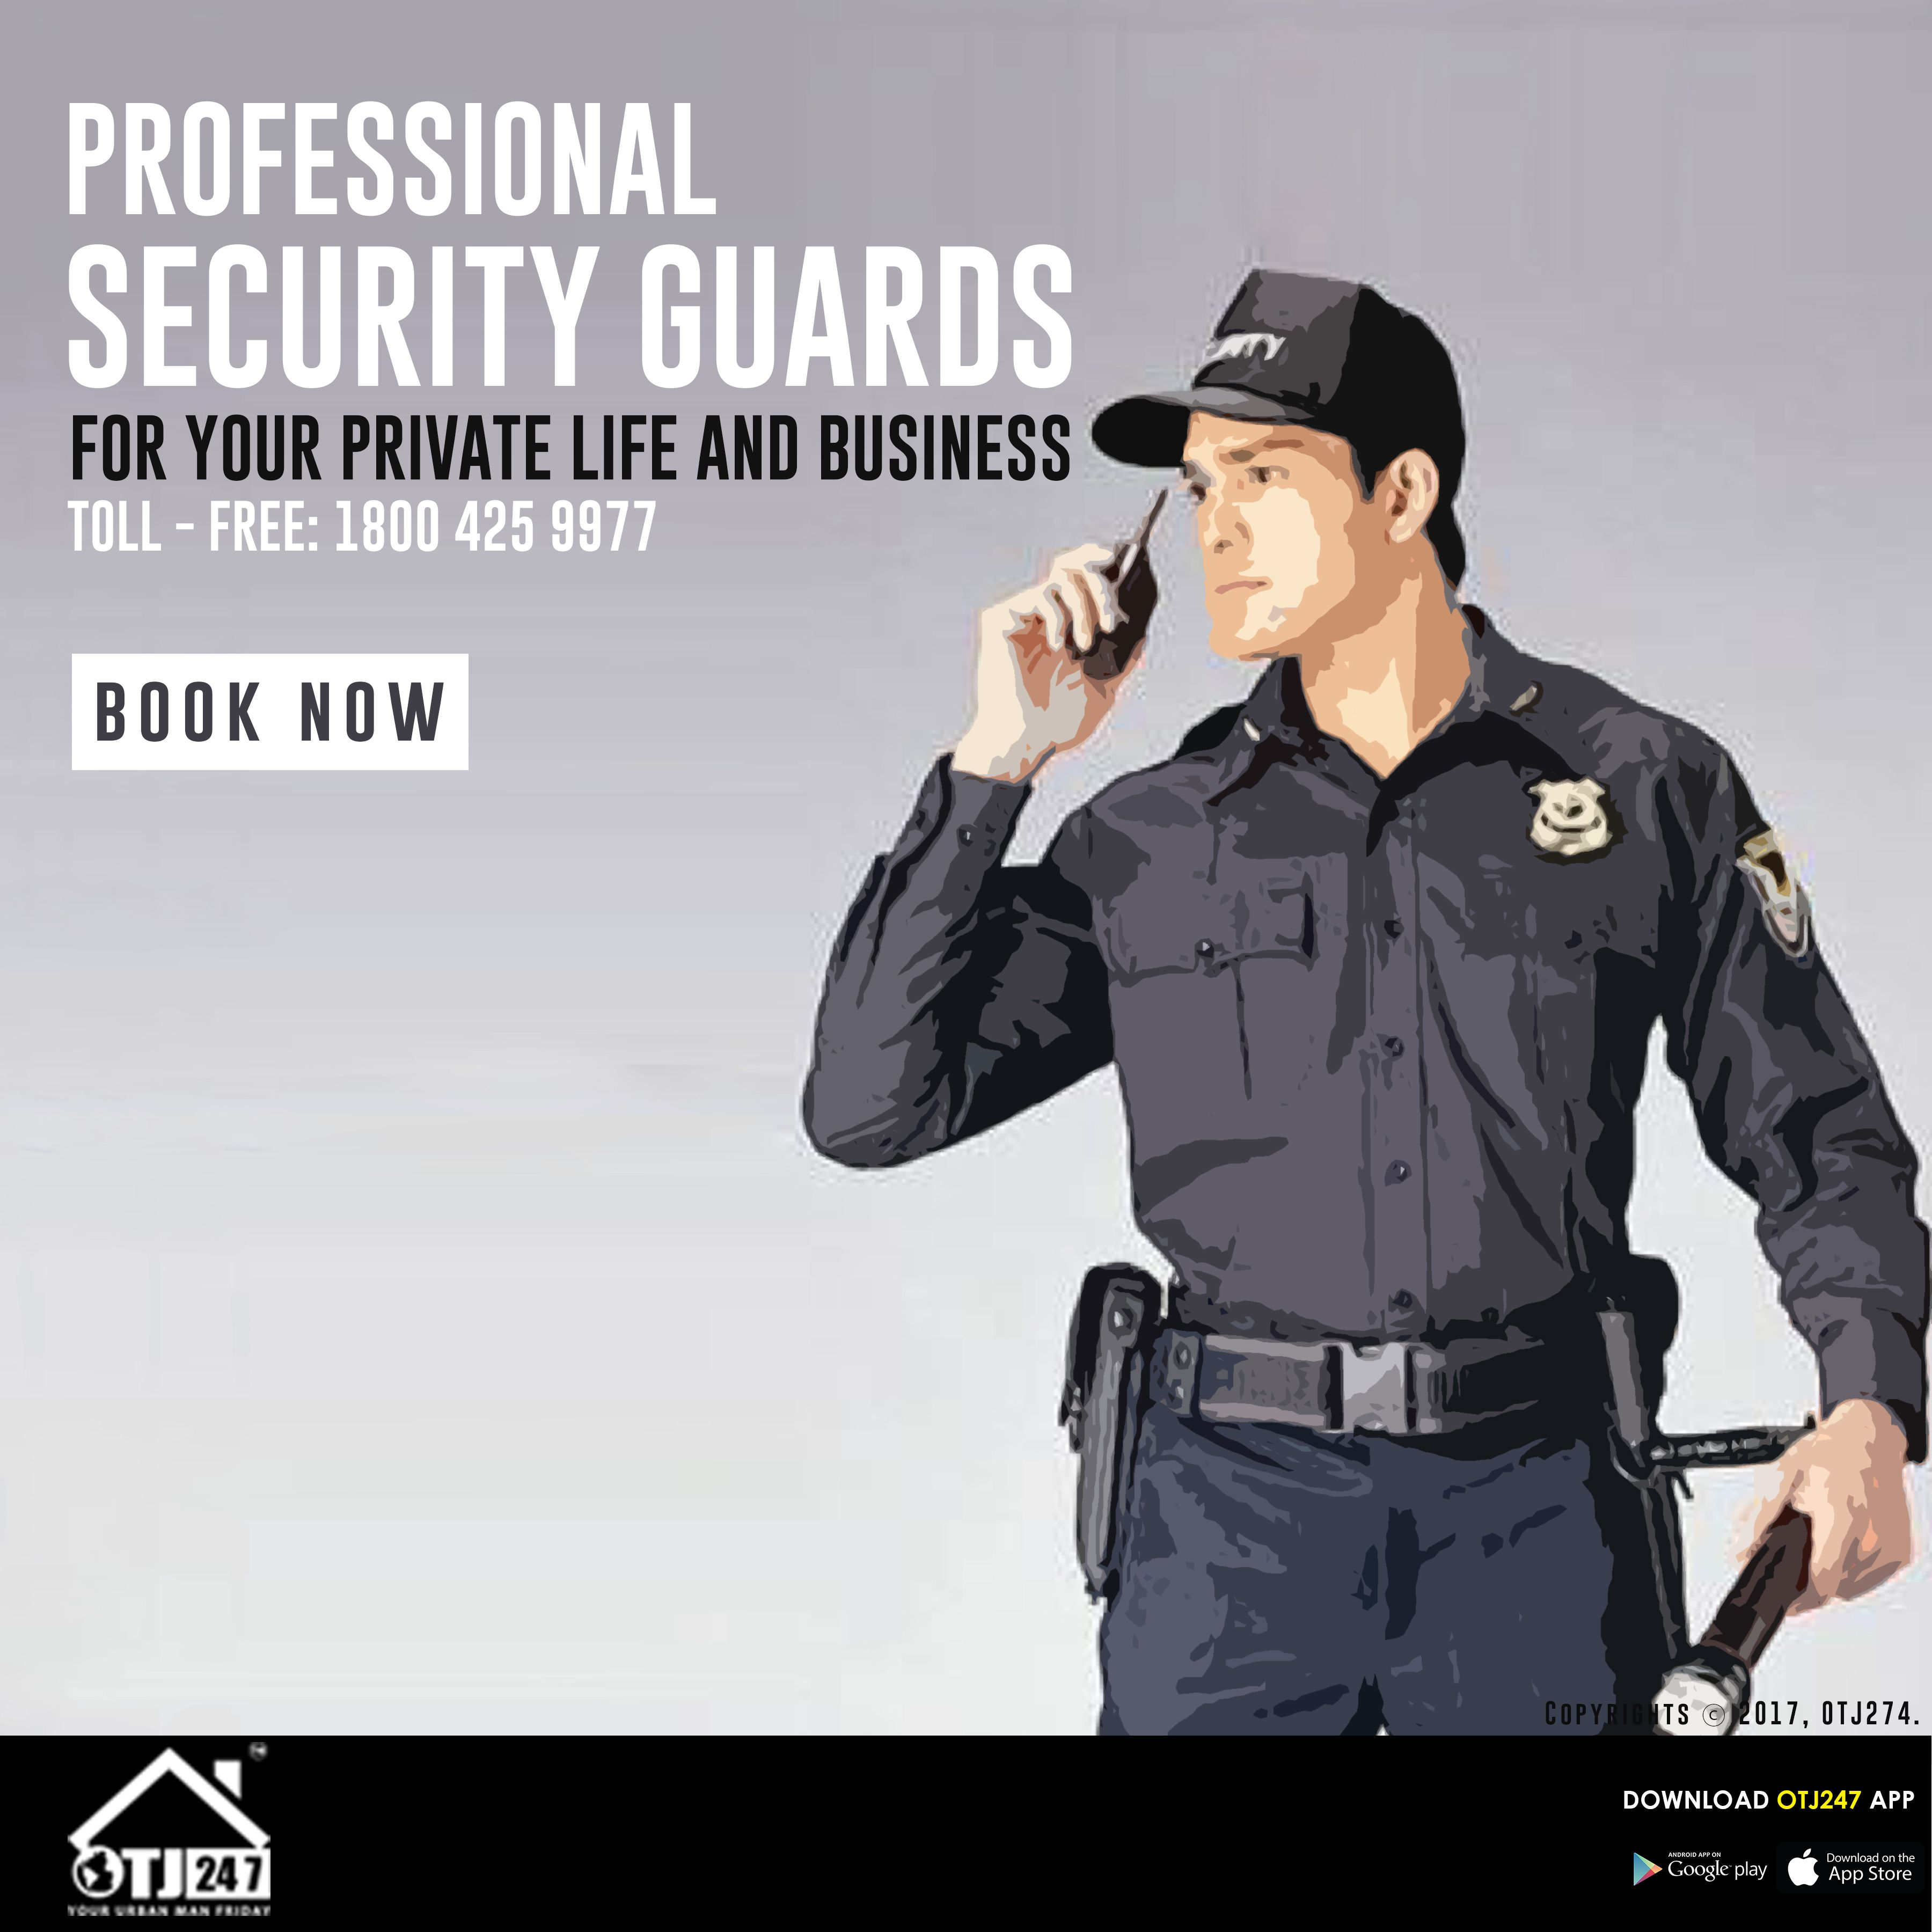 Professional Security Guards For Your Private Life And